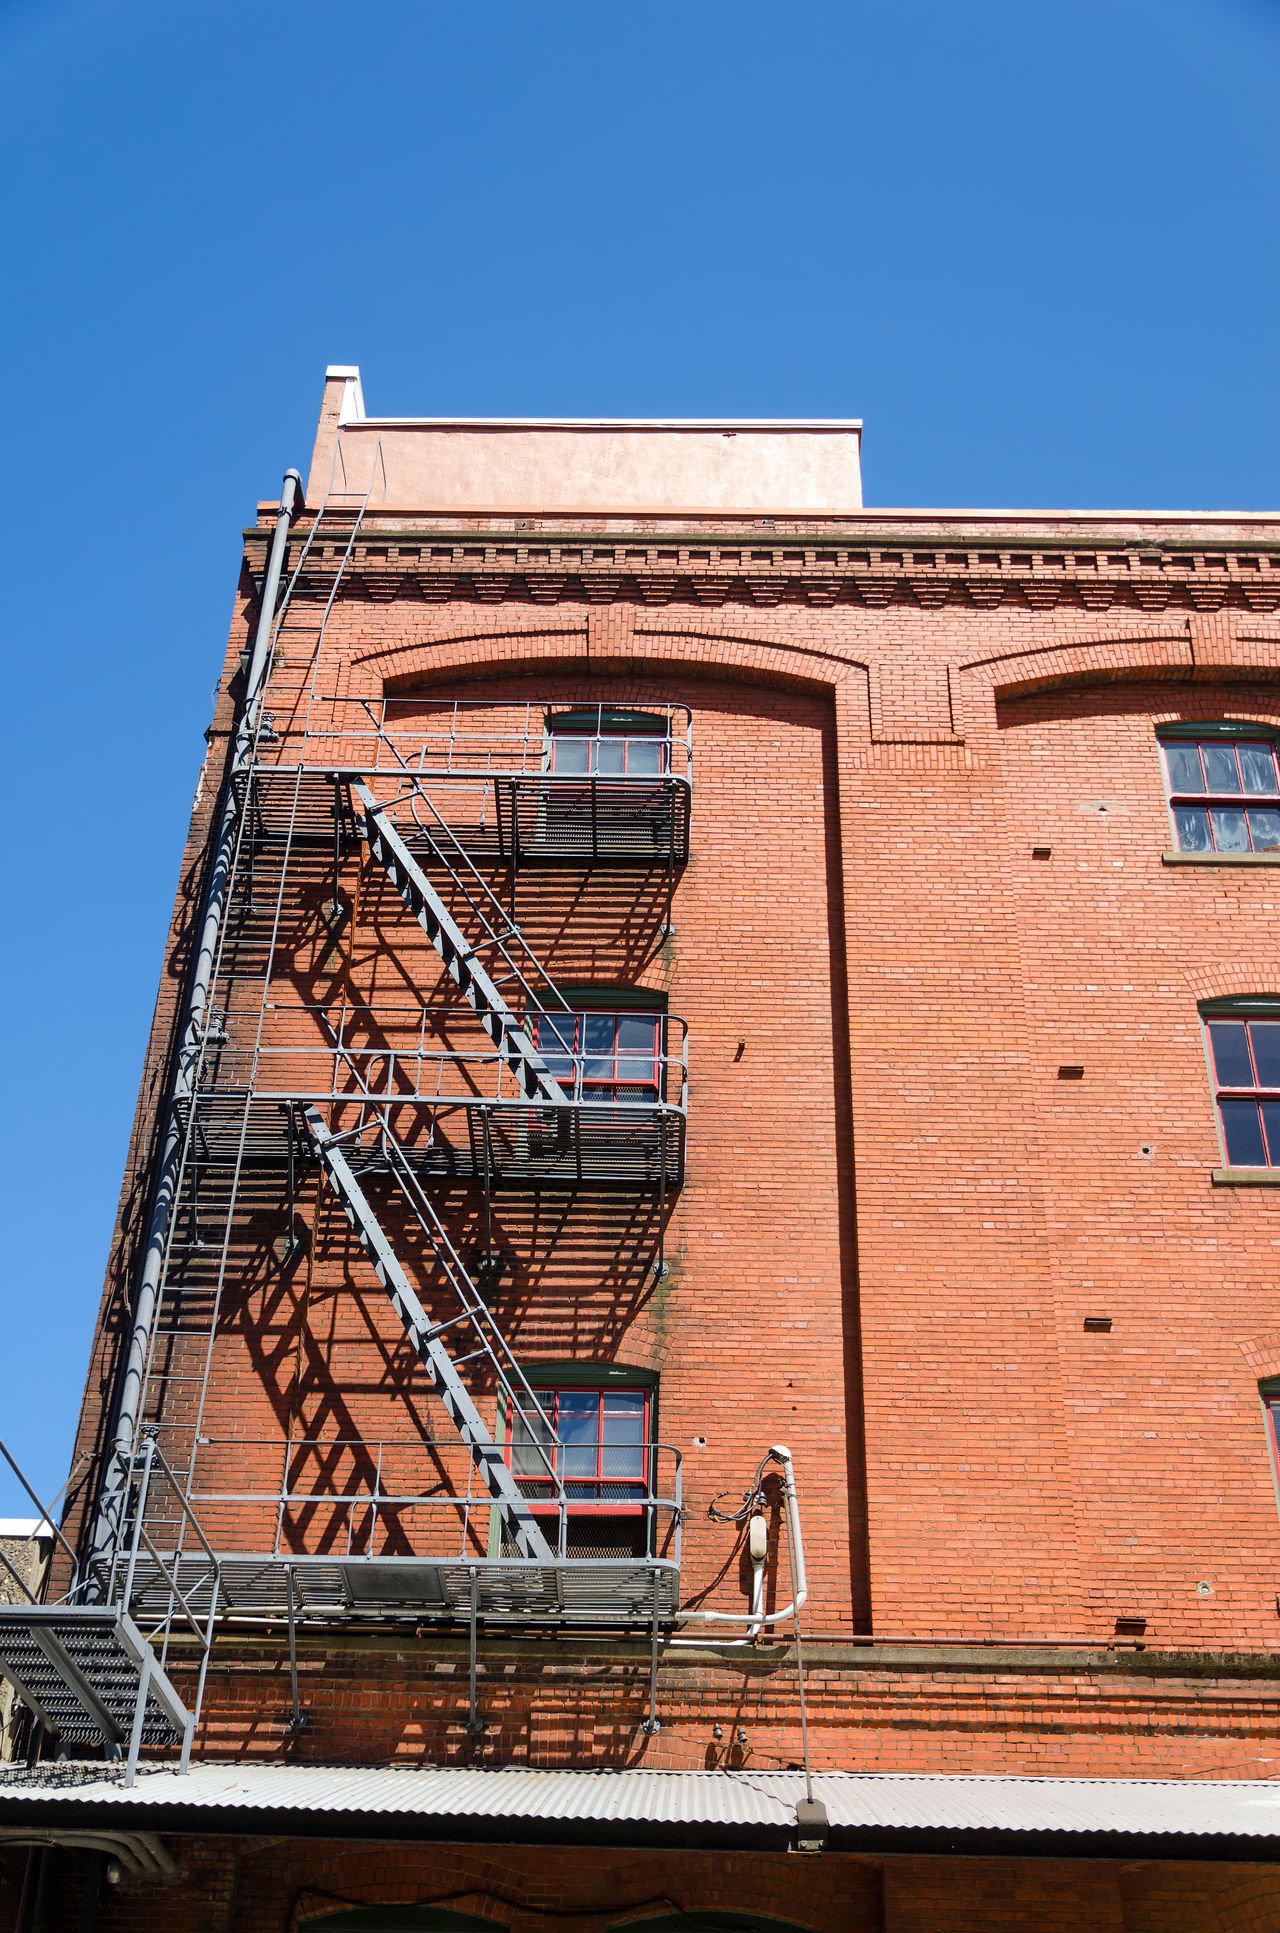 Fire escape running down the side of a red brick building in Portland, Oregon America Aparment Architecture Building Business Center City Cityscape Downtown Exterior Landmark Metropolis Modern Northwest Oregon Outodoors Pacific Portland Skyline Structure Tourism United States Urban USA View